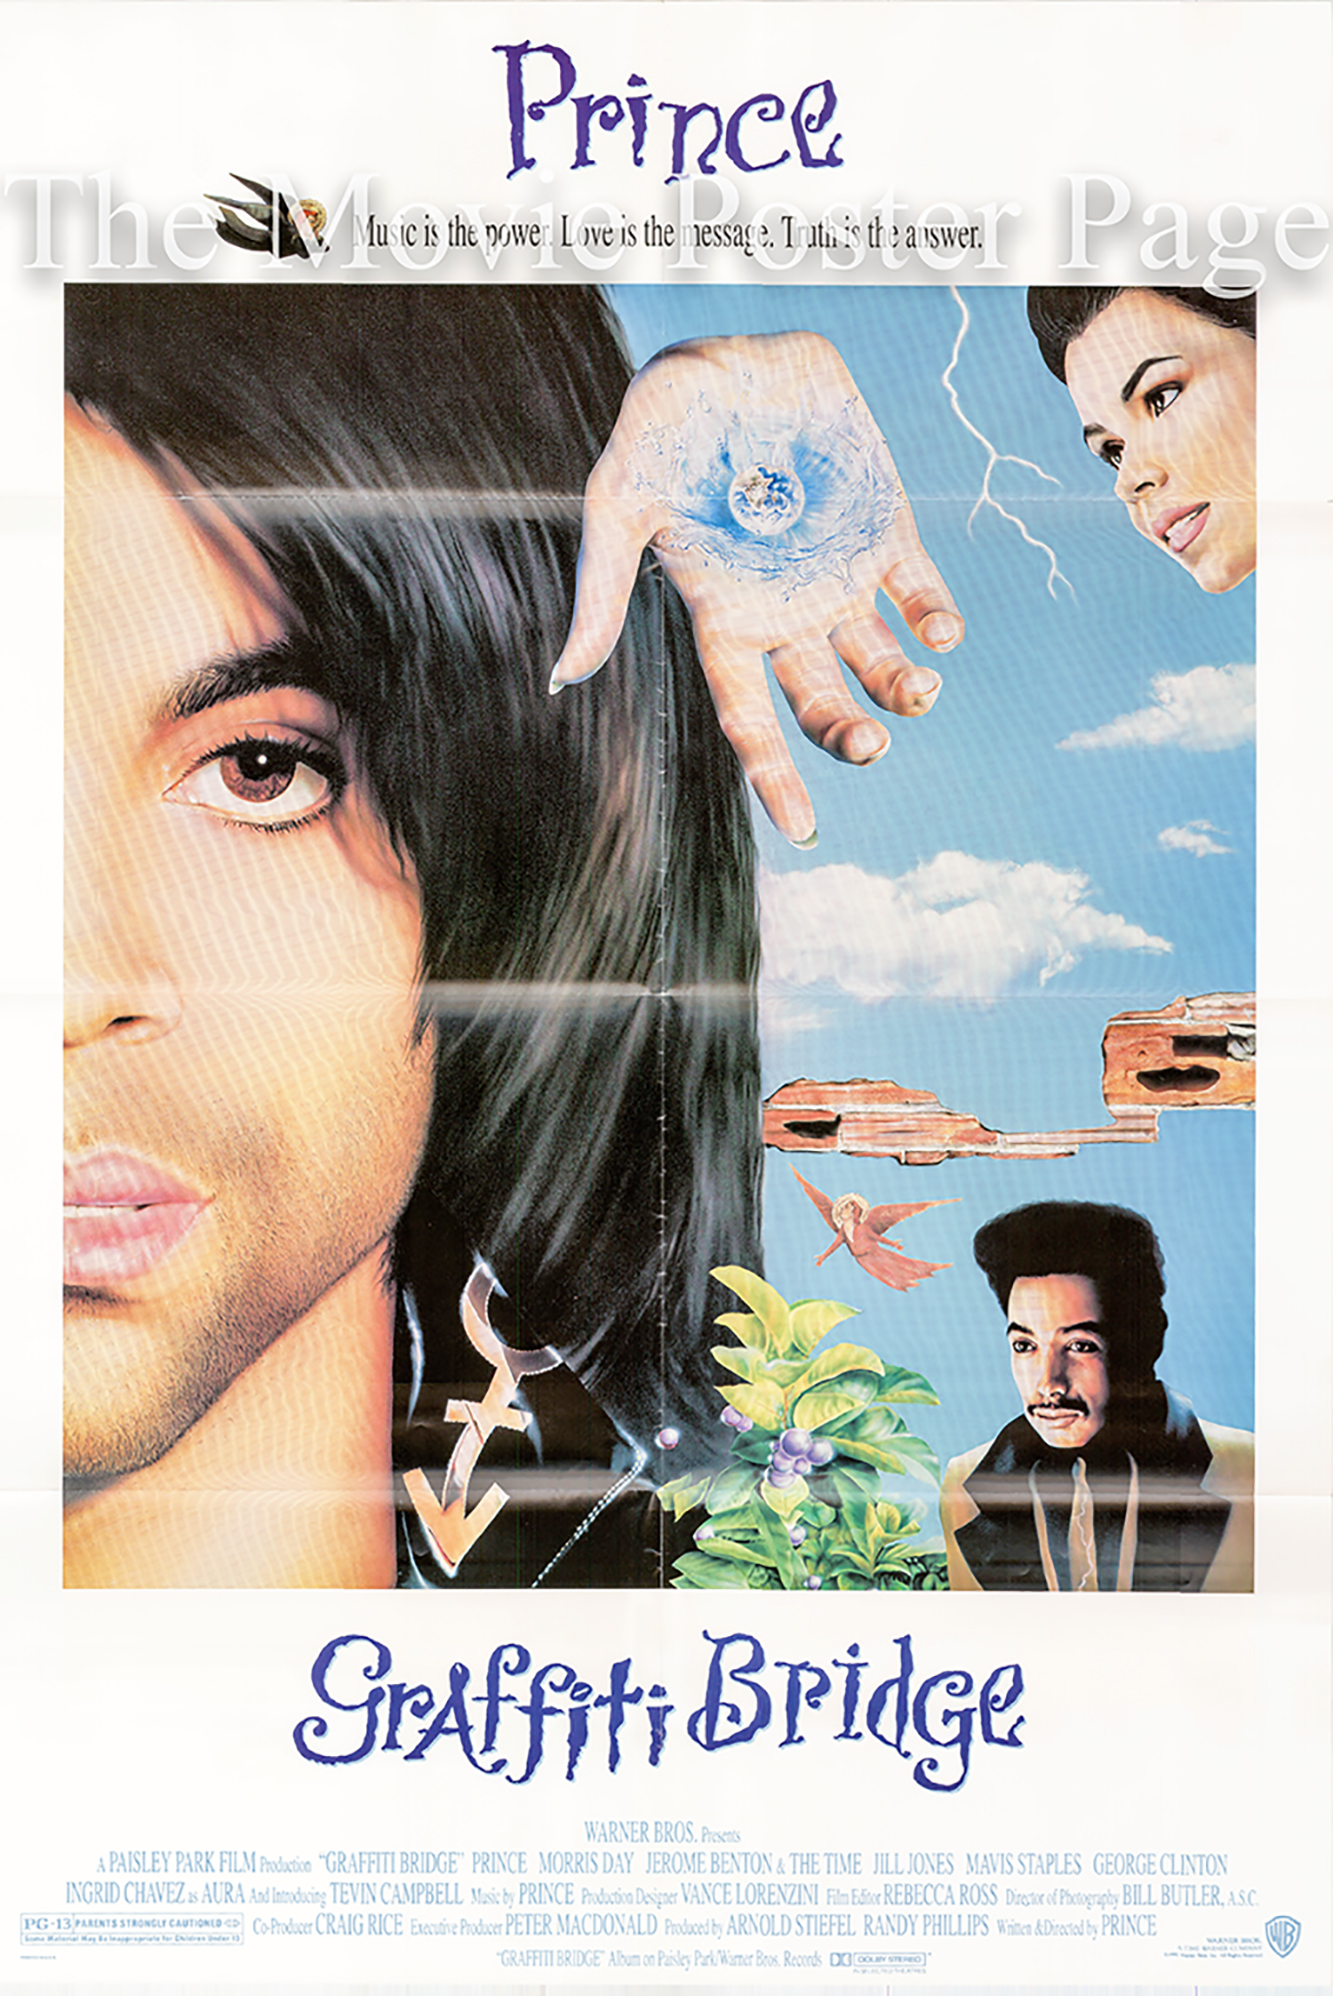 Pictured is a US promotional poster for the 1990 Prince film Graffiti Bridge starring Prince.